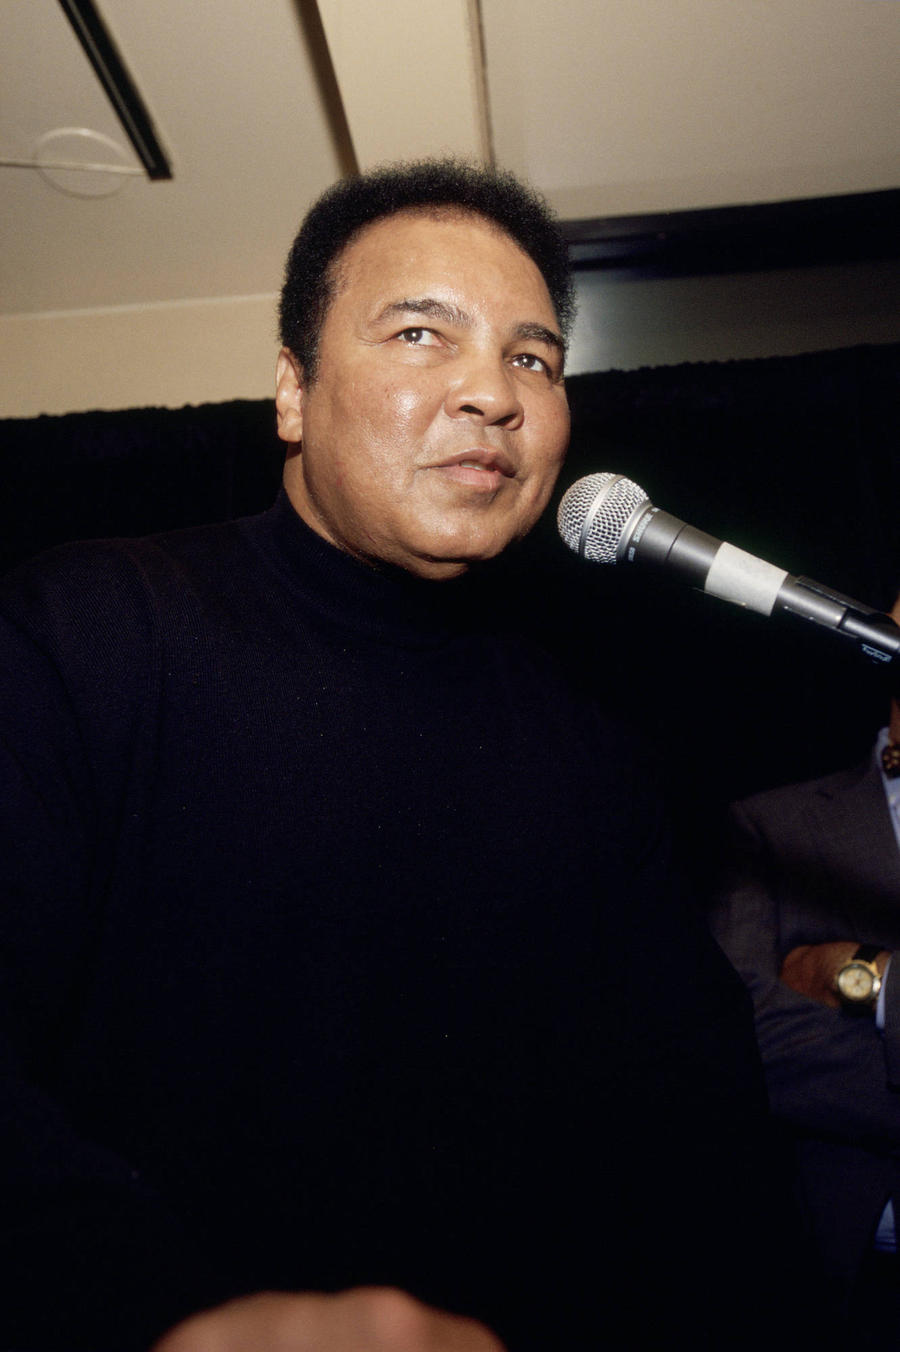 Muhammad Ali's Son Detained At Airport For Second Time - Report